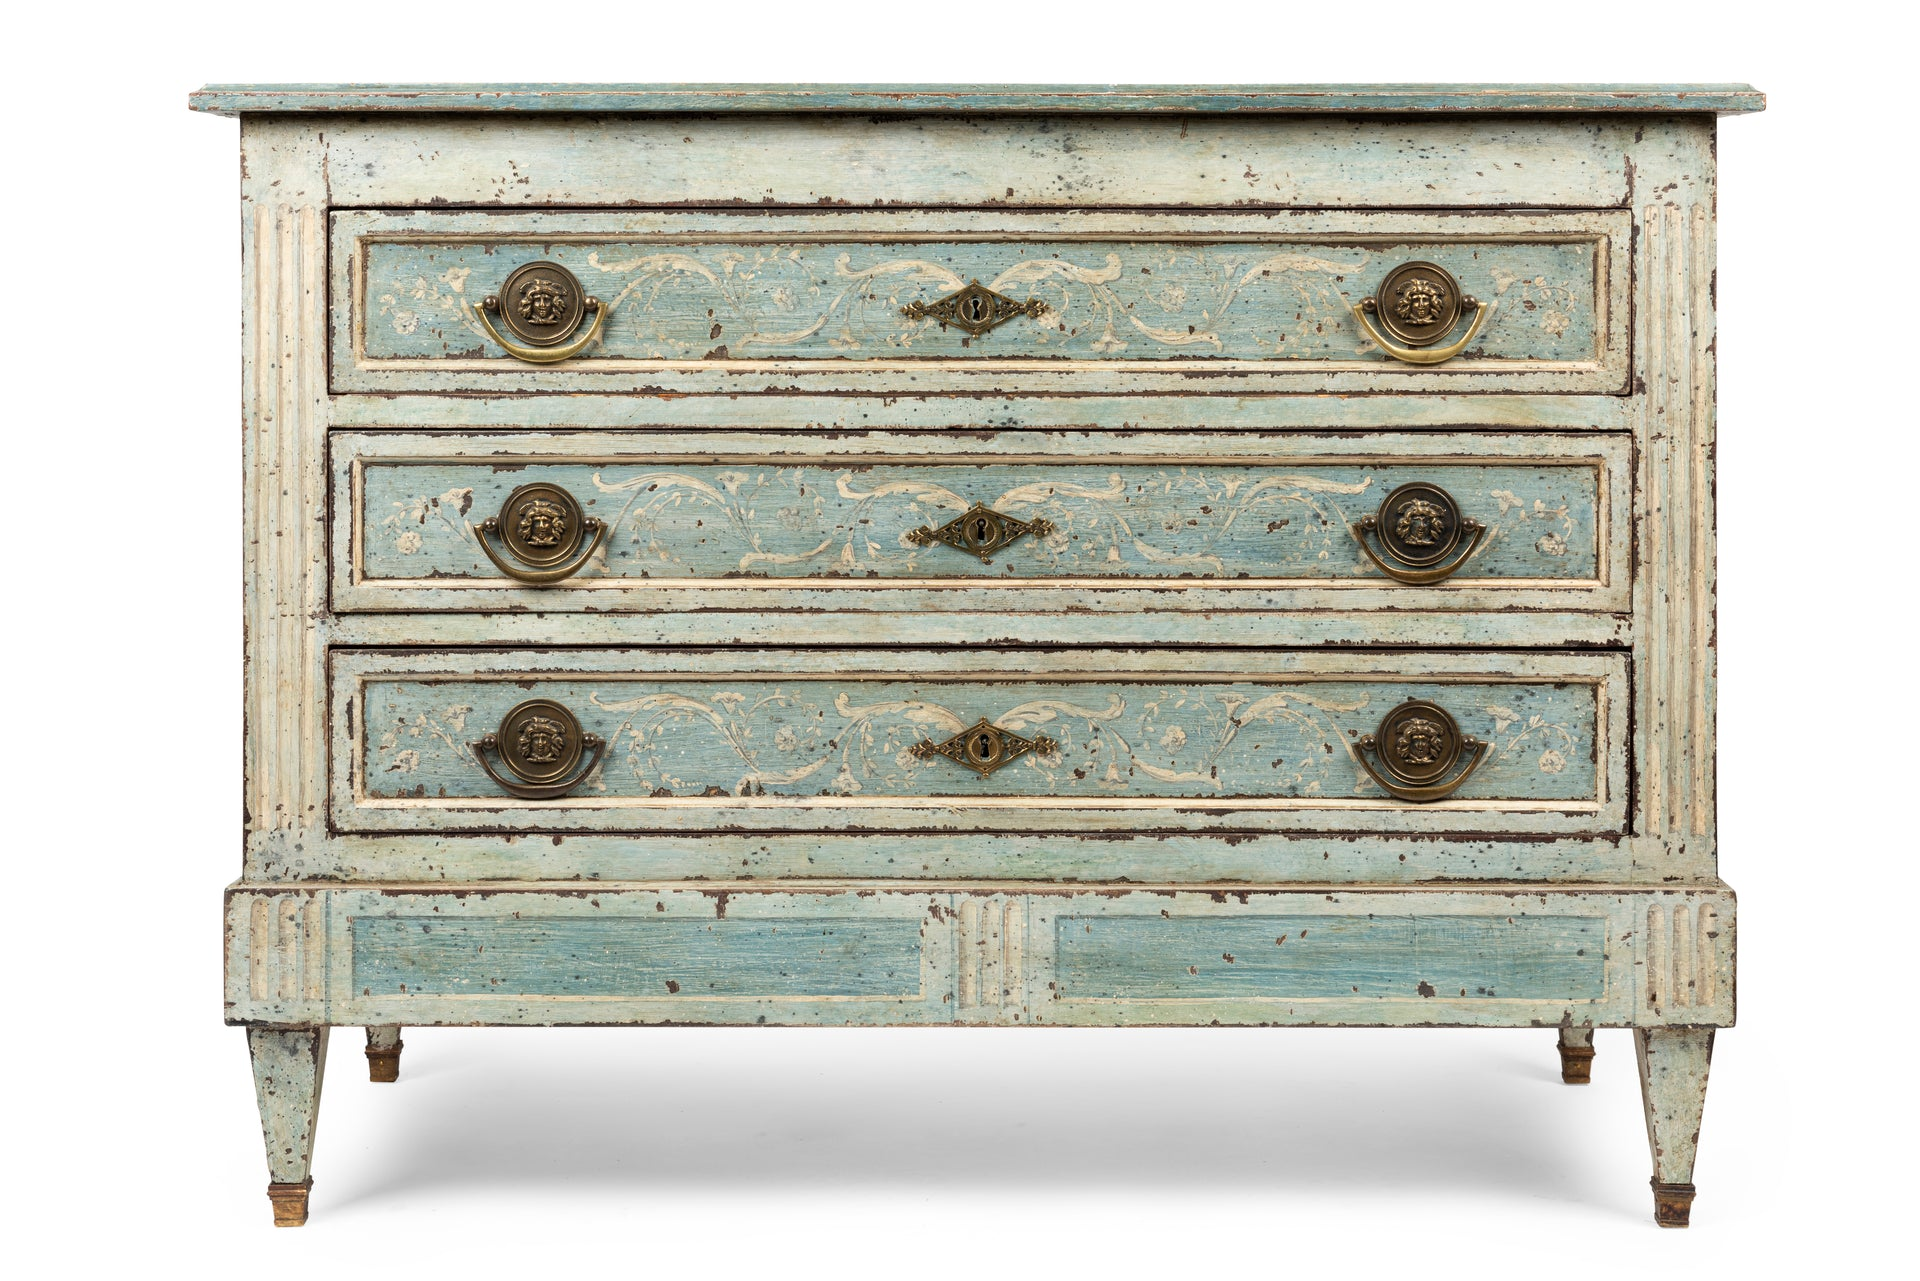 SOLD A very decorative Italian pale blue, white and grey painted three drawer commode